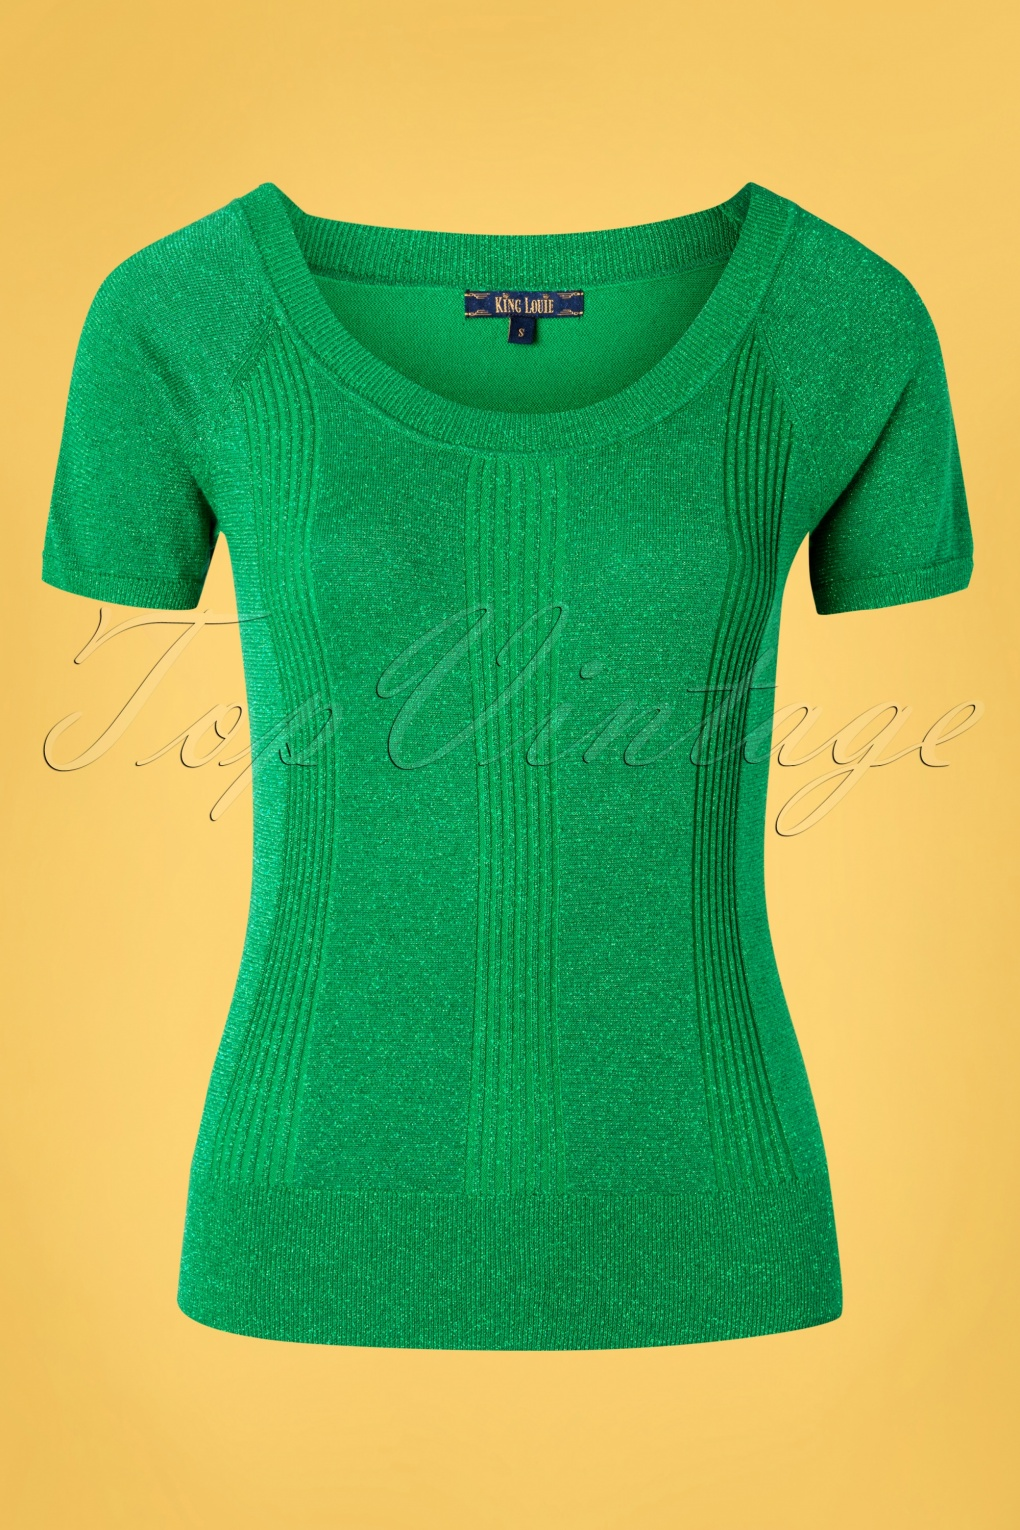 60s Shirts, T-shirt, Blouses, Hippie Shirts 60s Boatneck Lapis Top in Very Green £50.79 AT vintagedancer.com